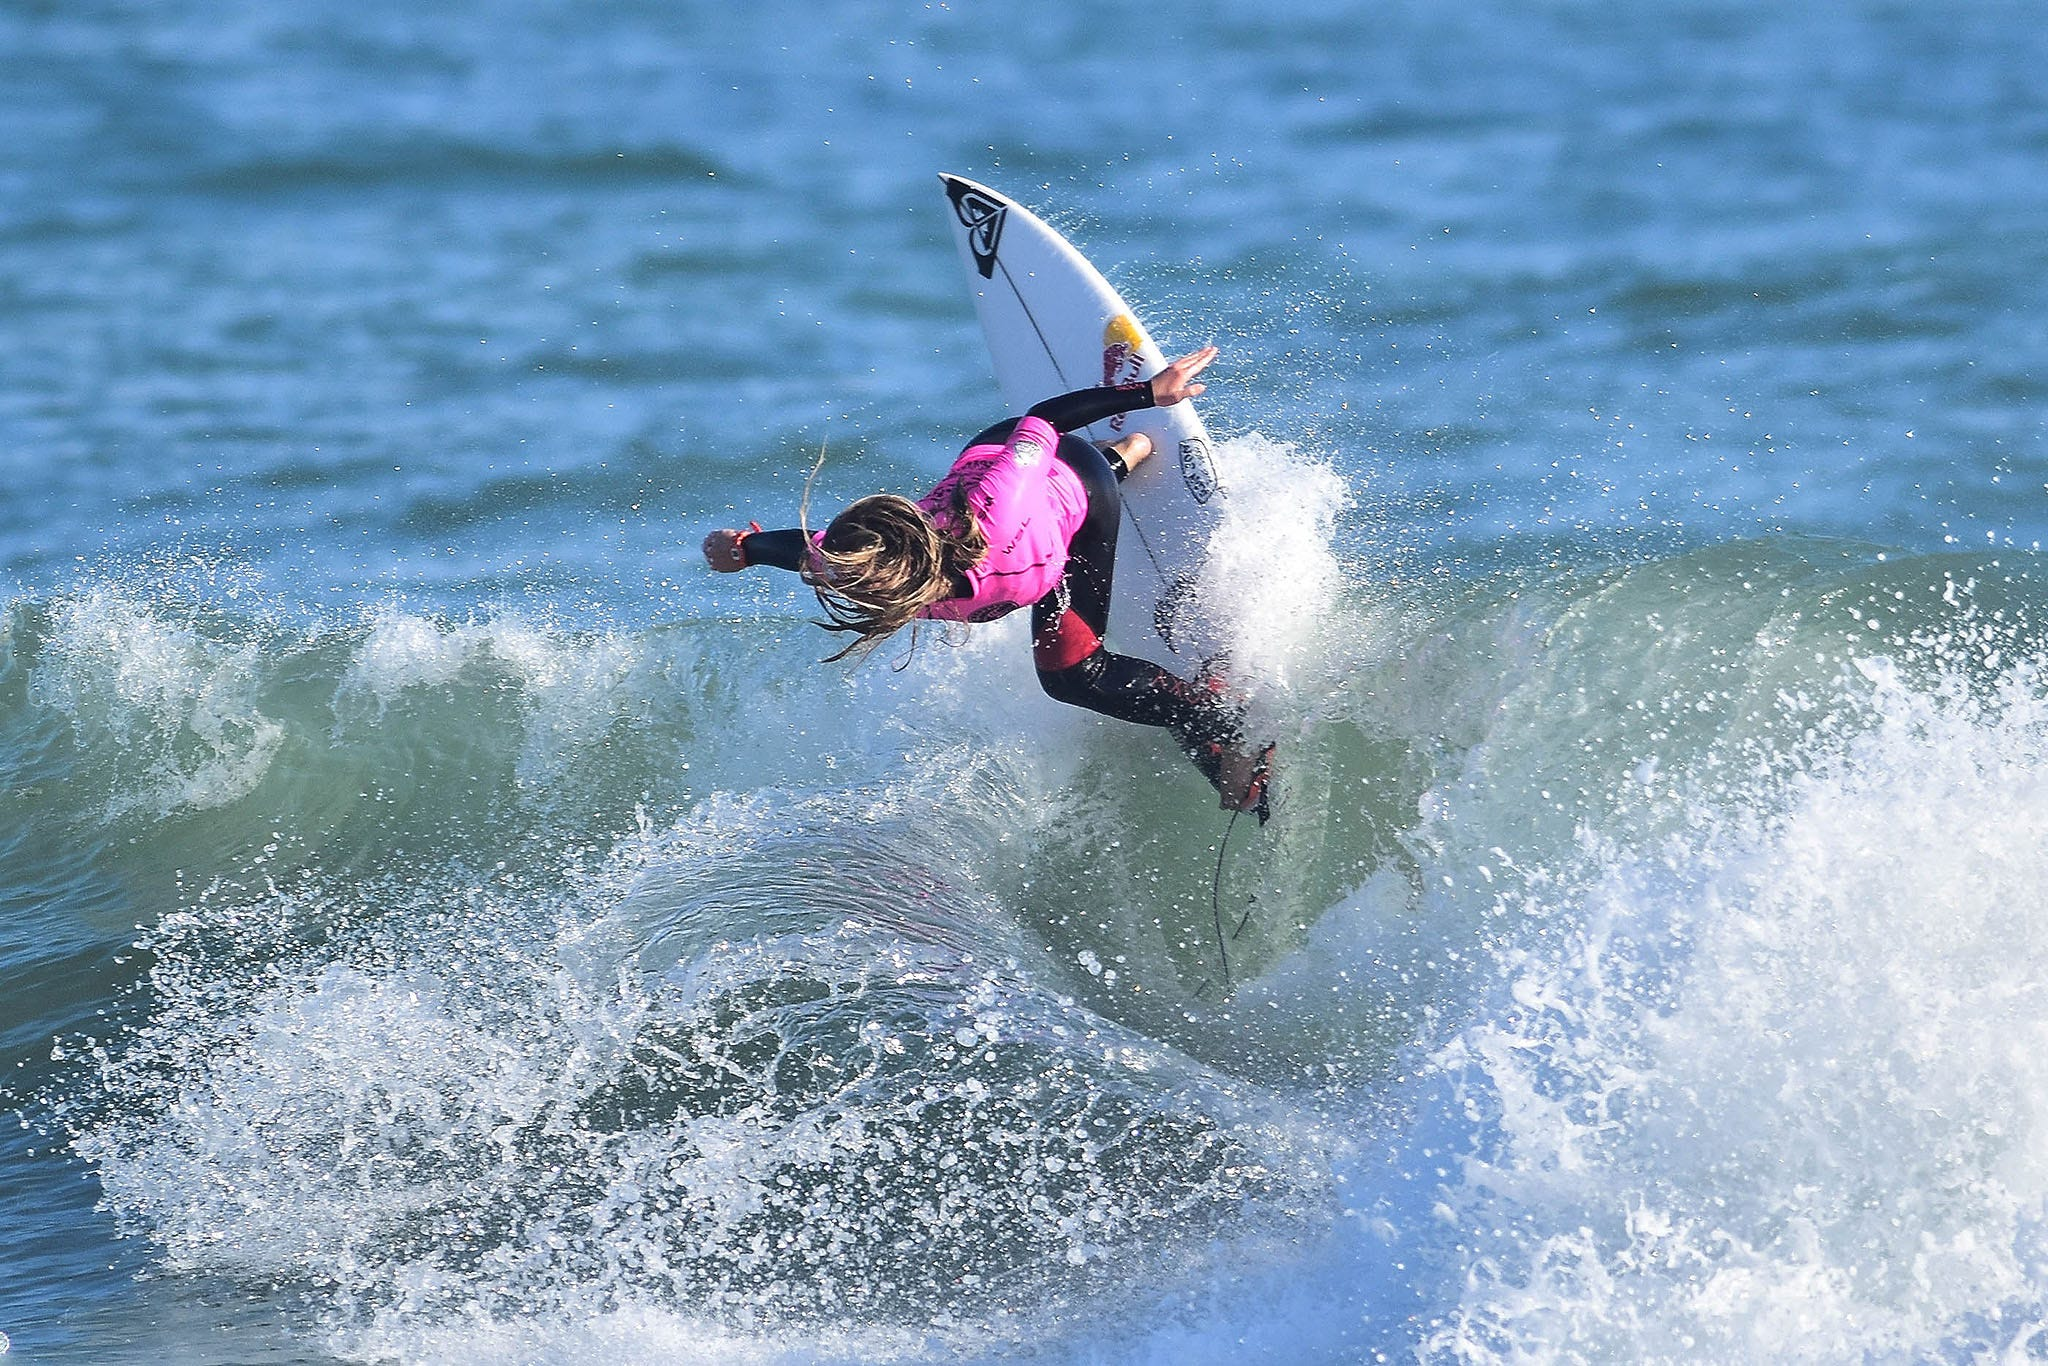 636522350501795002-WSL-6142-marks Florida Pro surf event returning to Sebastian Inlet, with help of $160,000 in tourism tax